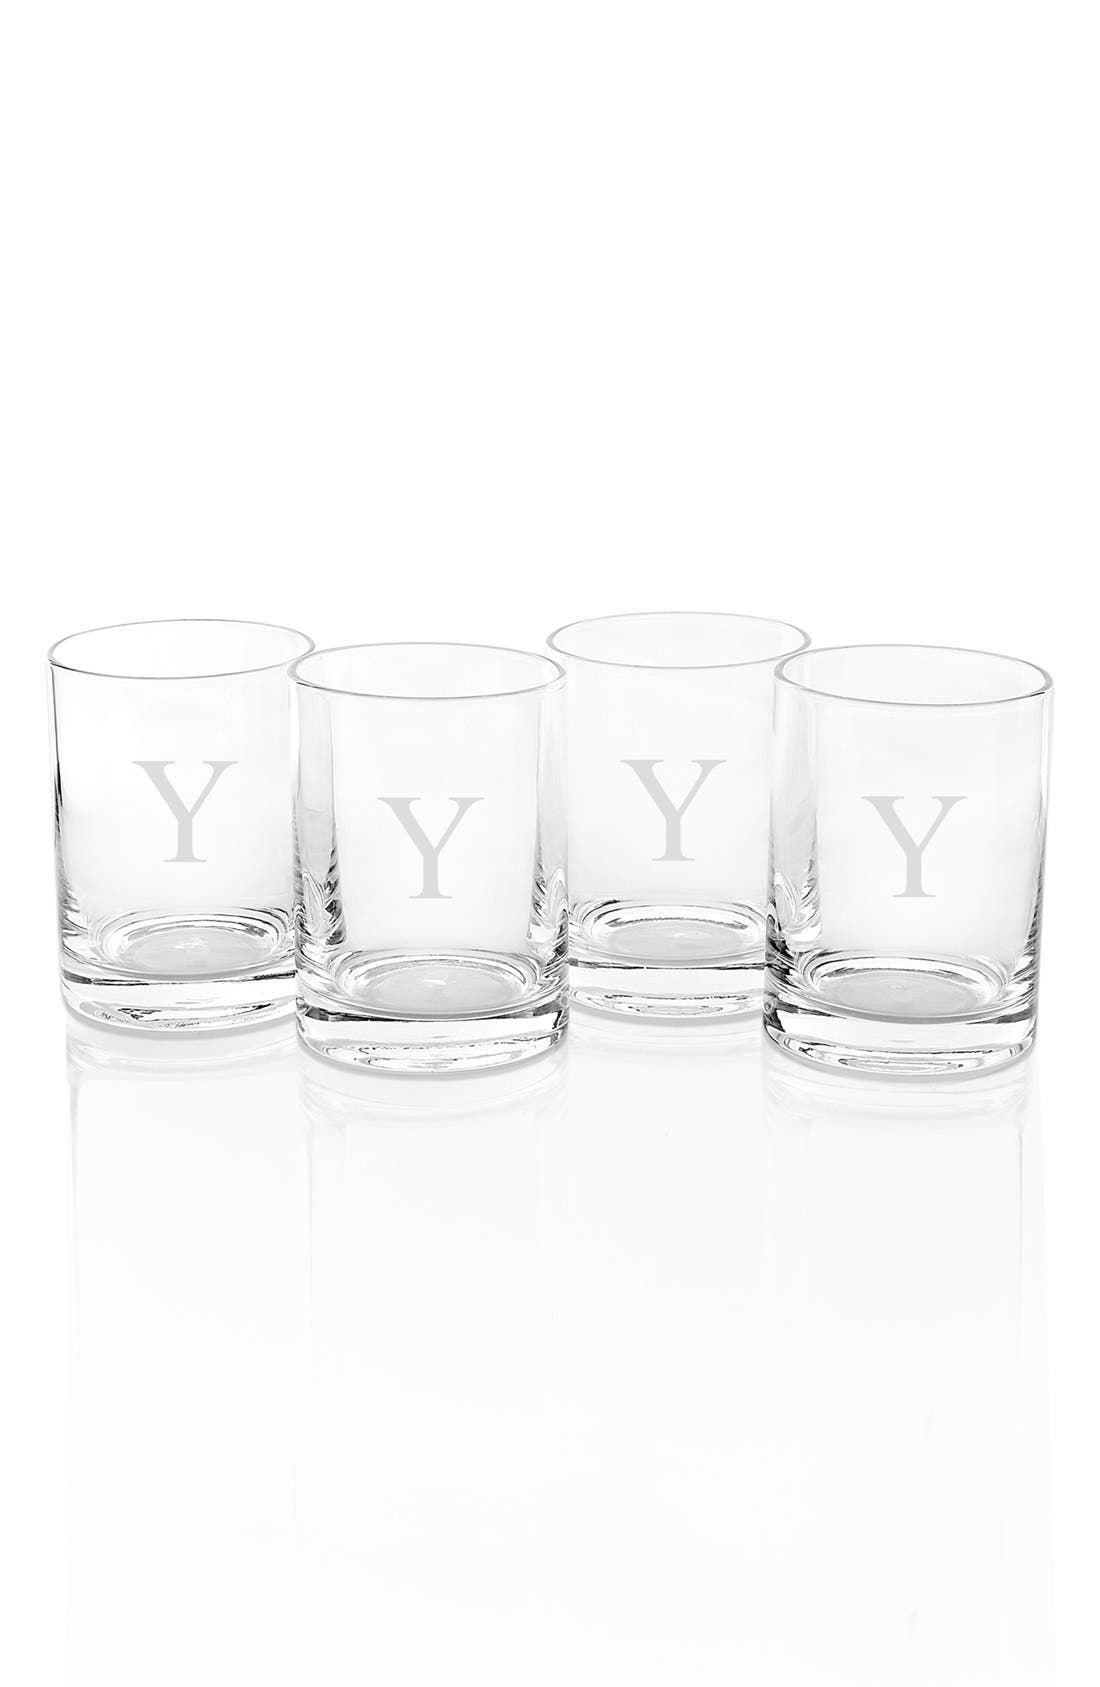 Cathy's Concepts Monogram Drinking Glasses (Set of 4)